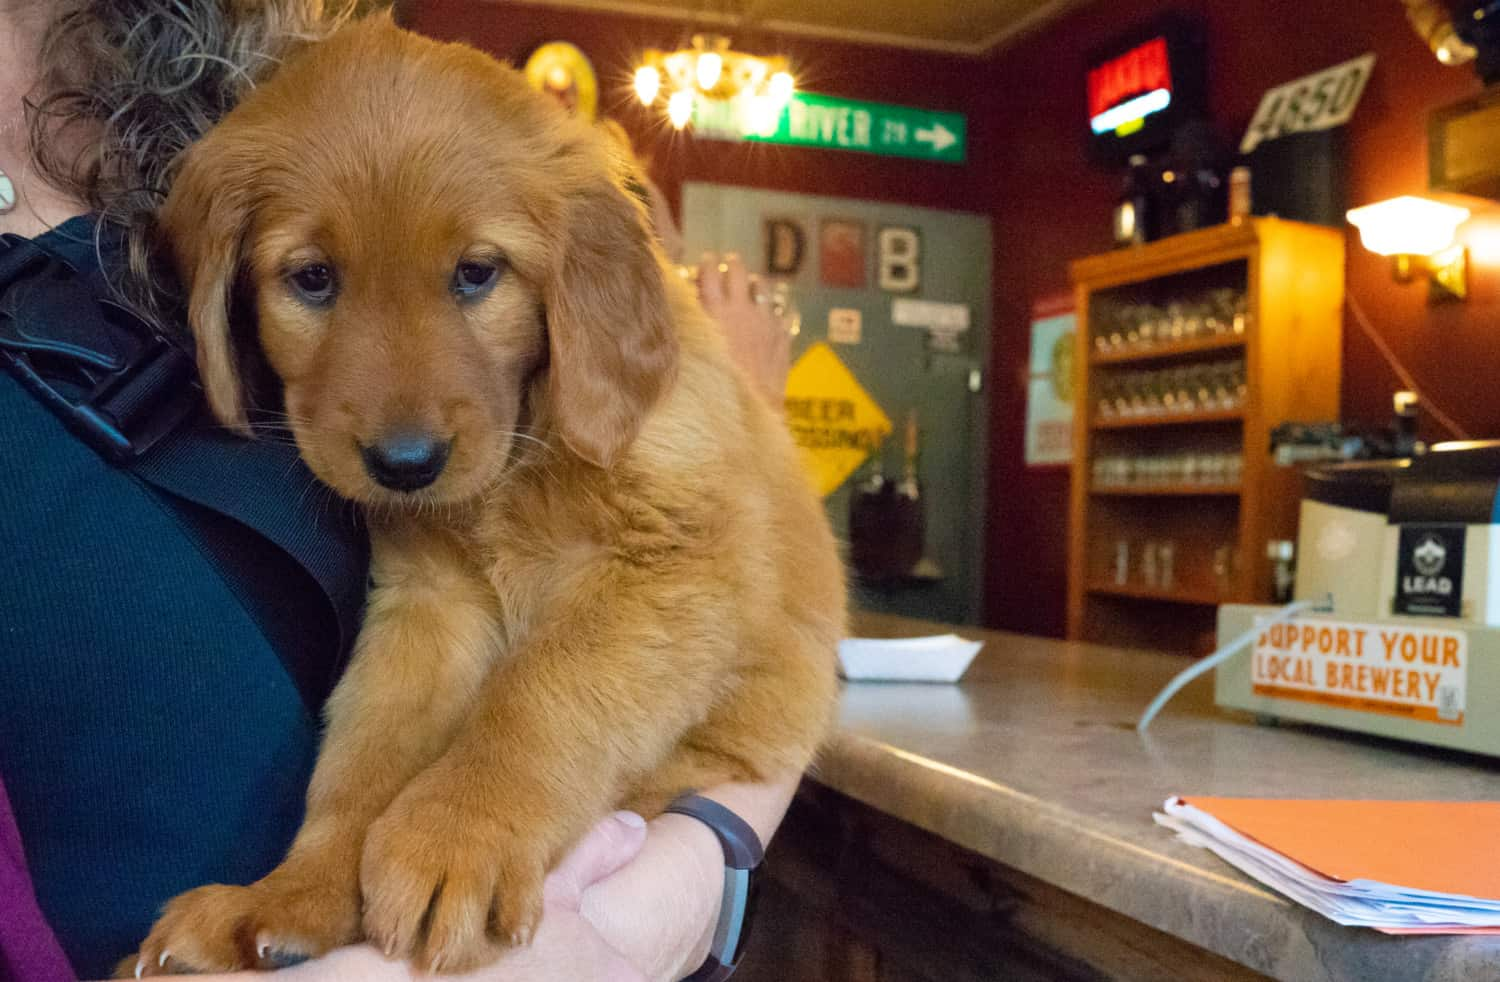 Golden Retriever puppy at pet-friendly Dakota Shivers Brewing in Lead, CO